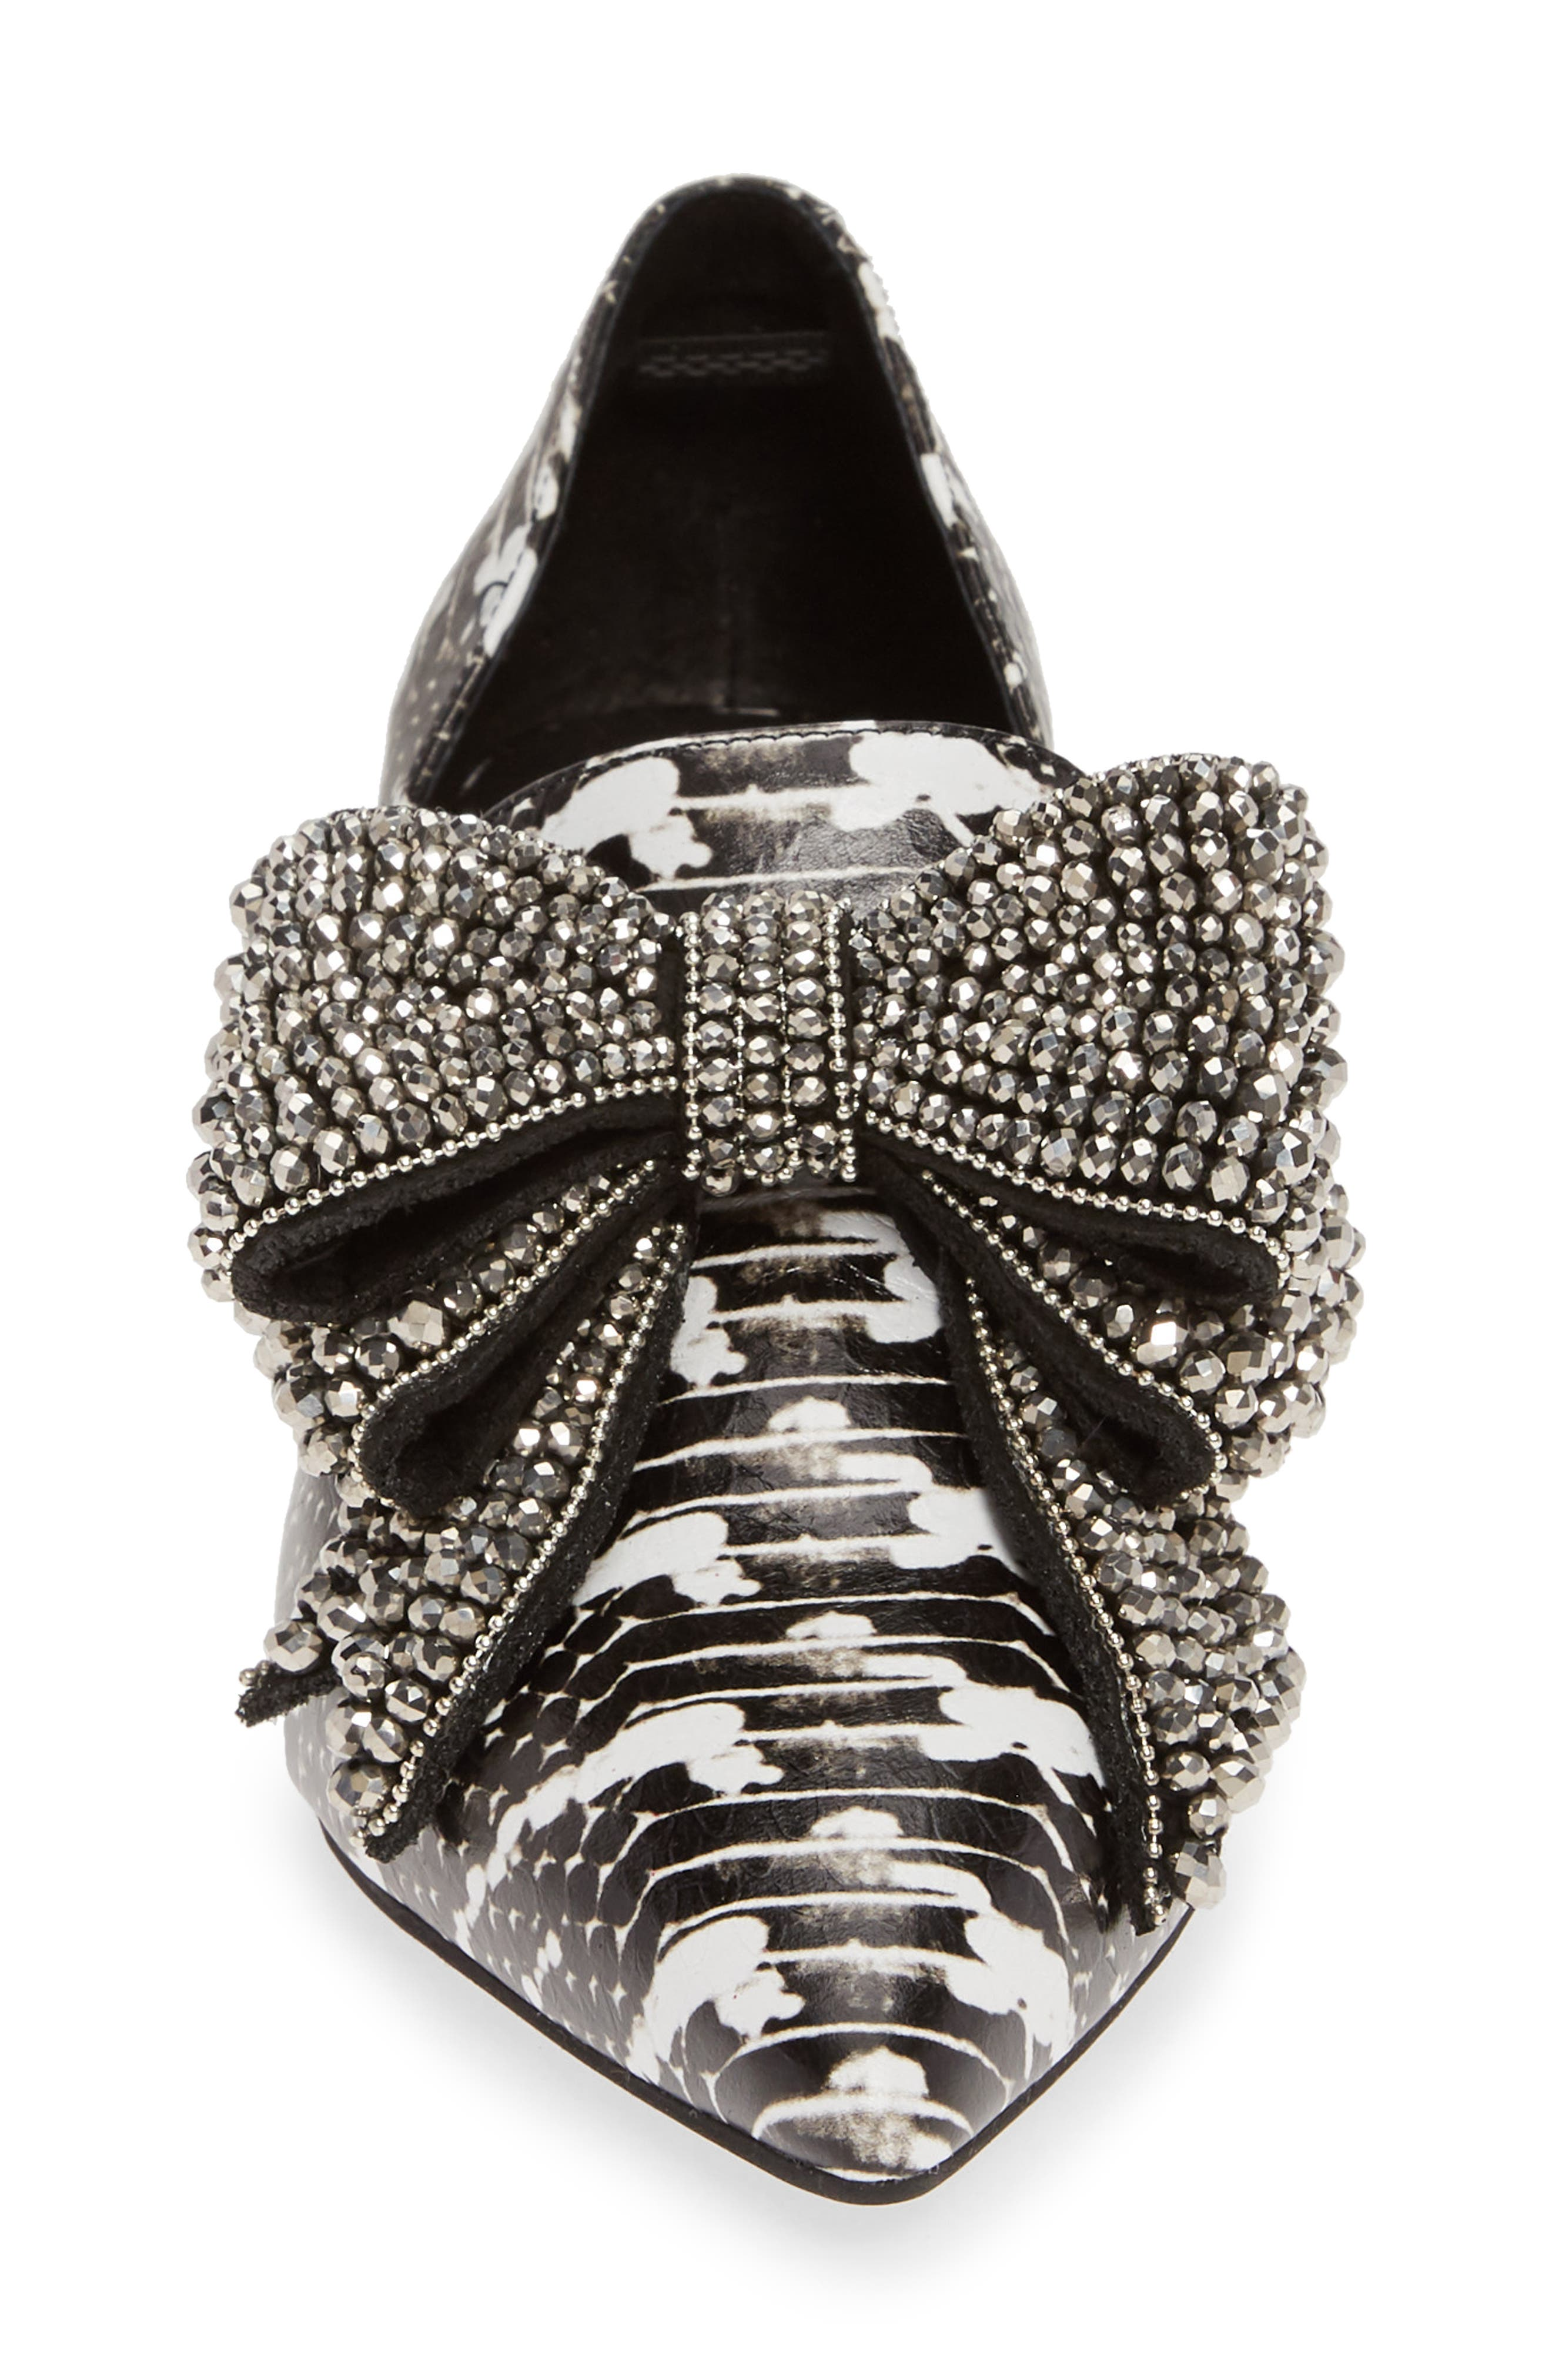 JEFFREY CAMPBELL, Valenti Embellished Bow Loafer, Alternate thumbnail 4, color, BLACK/WHITE/PEWTER